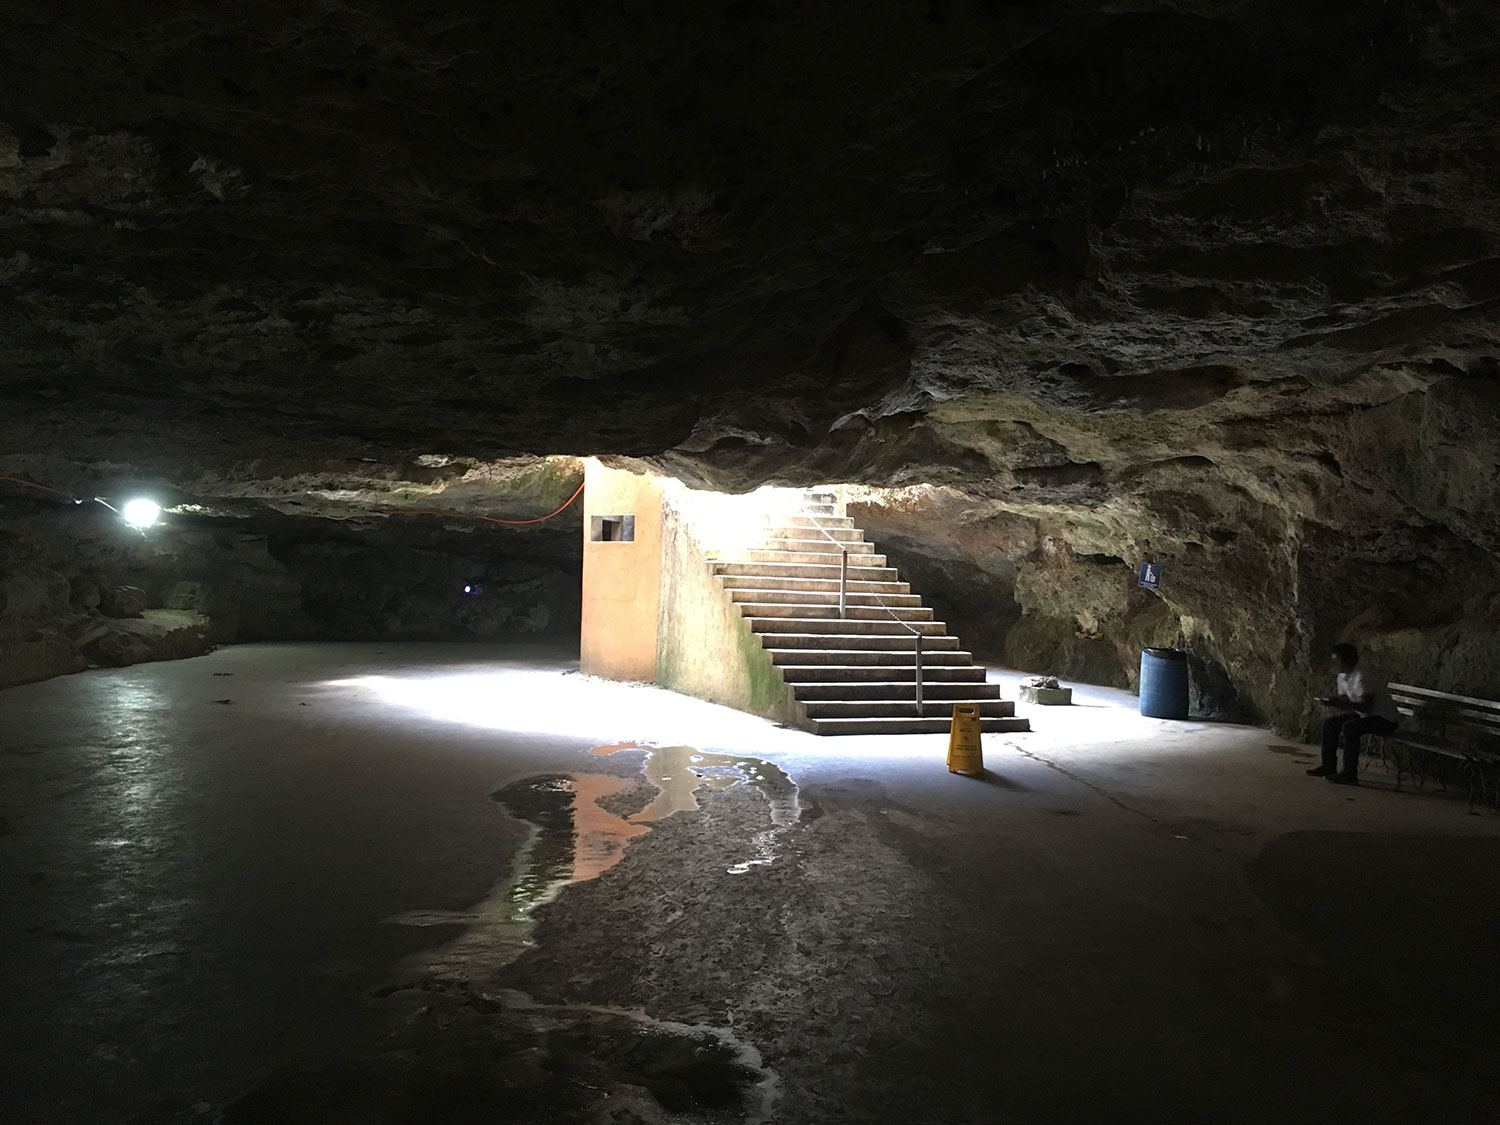 View of the entrance to the cave from the inside.